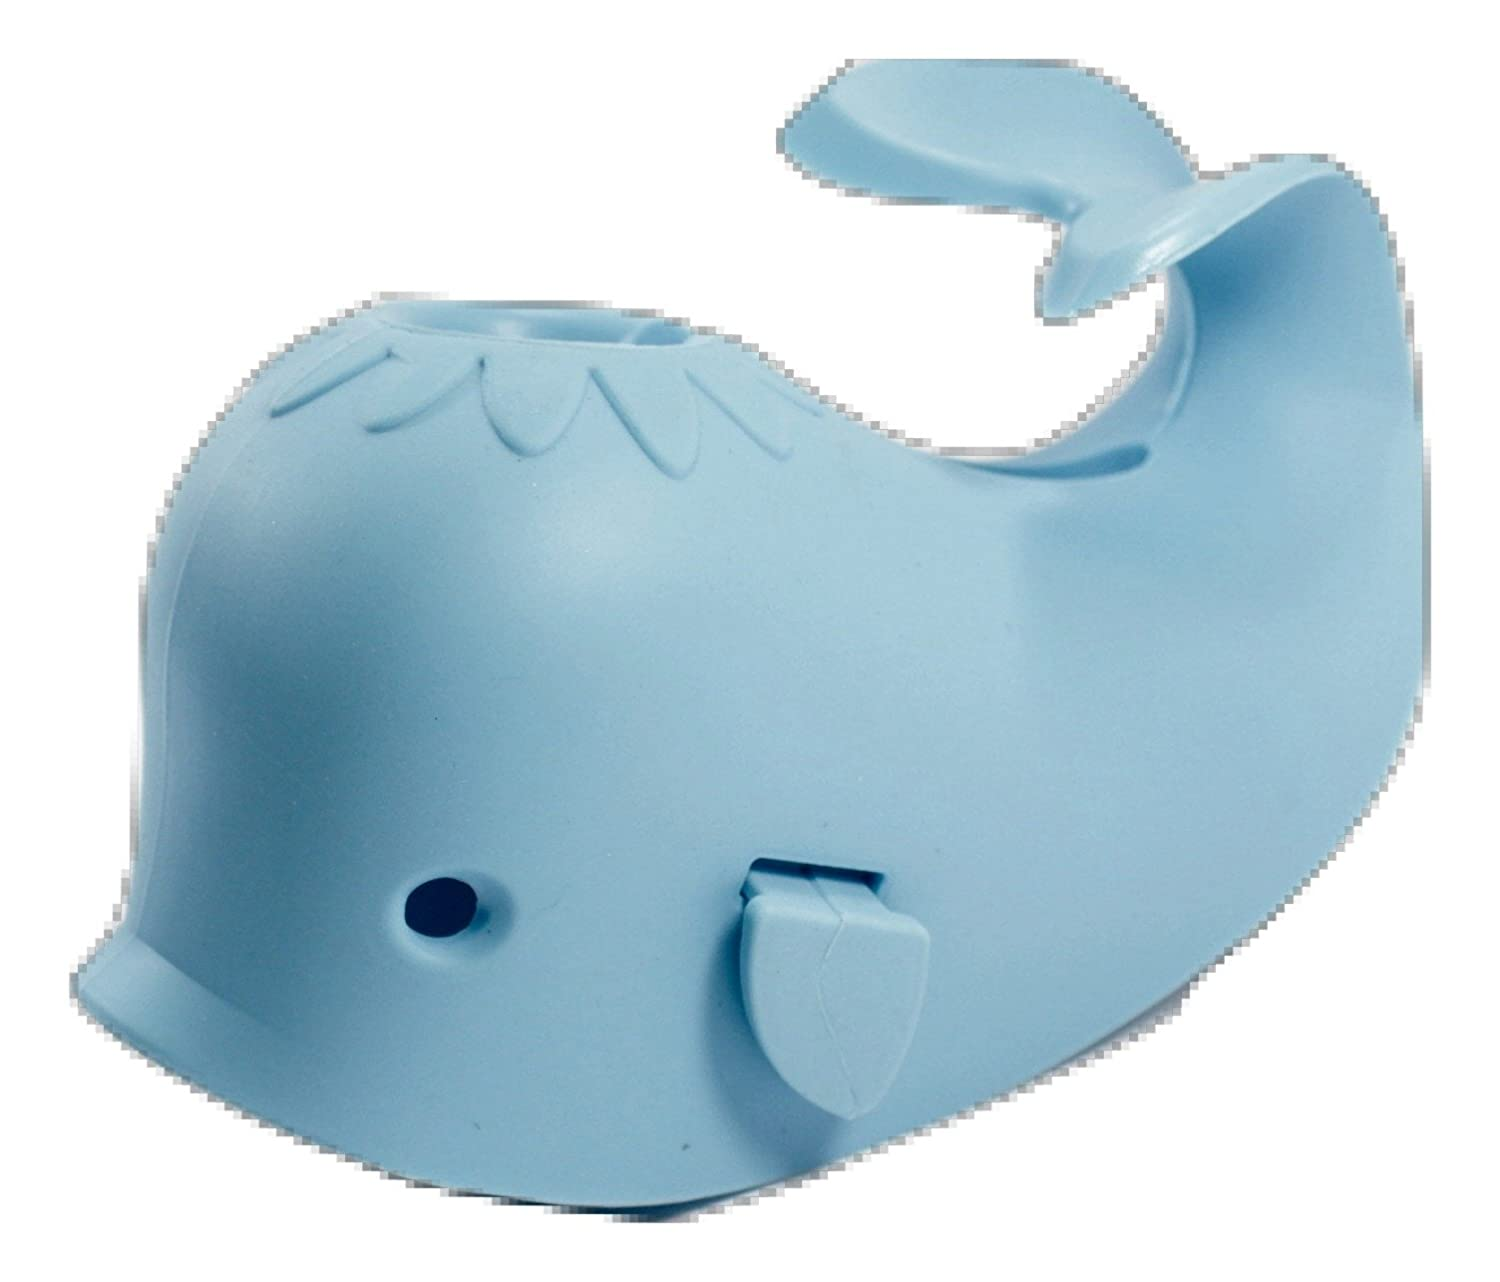 Faucet Cover (Blue Whale) ~ Soft Silicon Bath Tub Safety Protection Cover By Aurelie Live Well